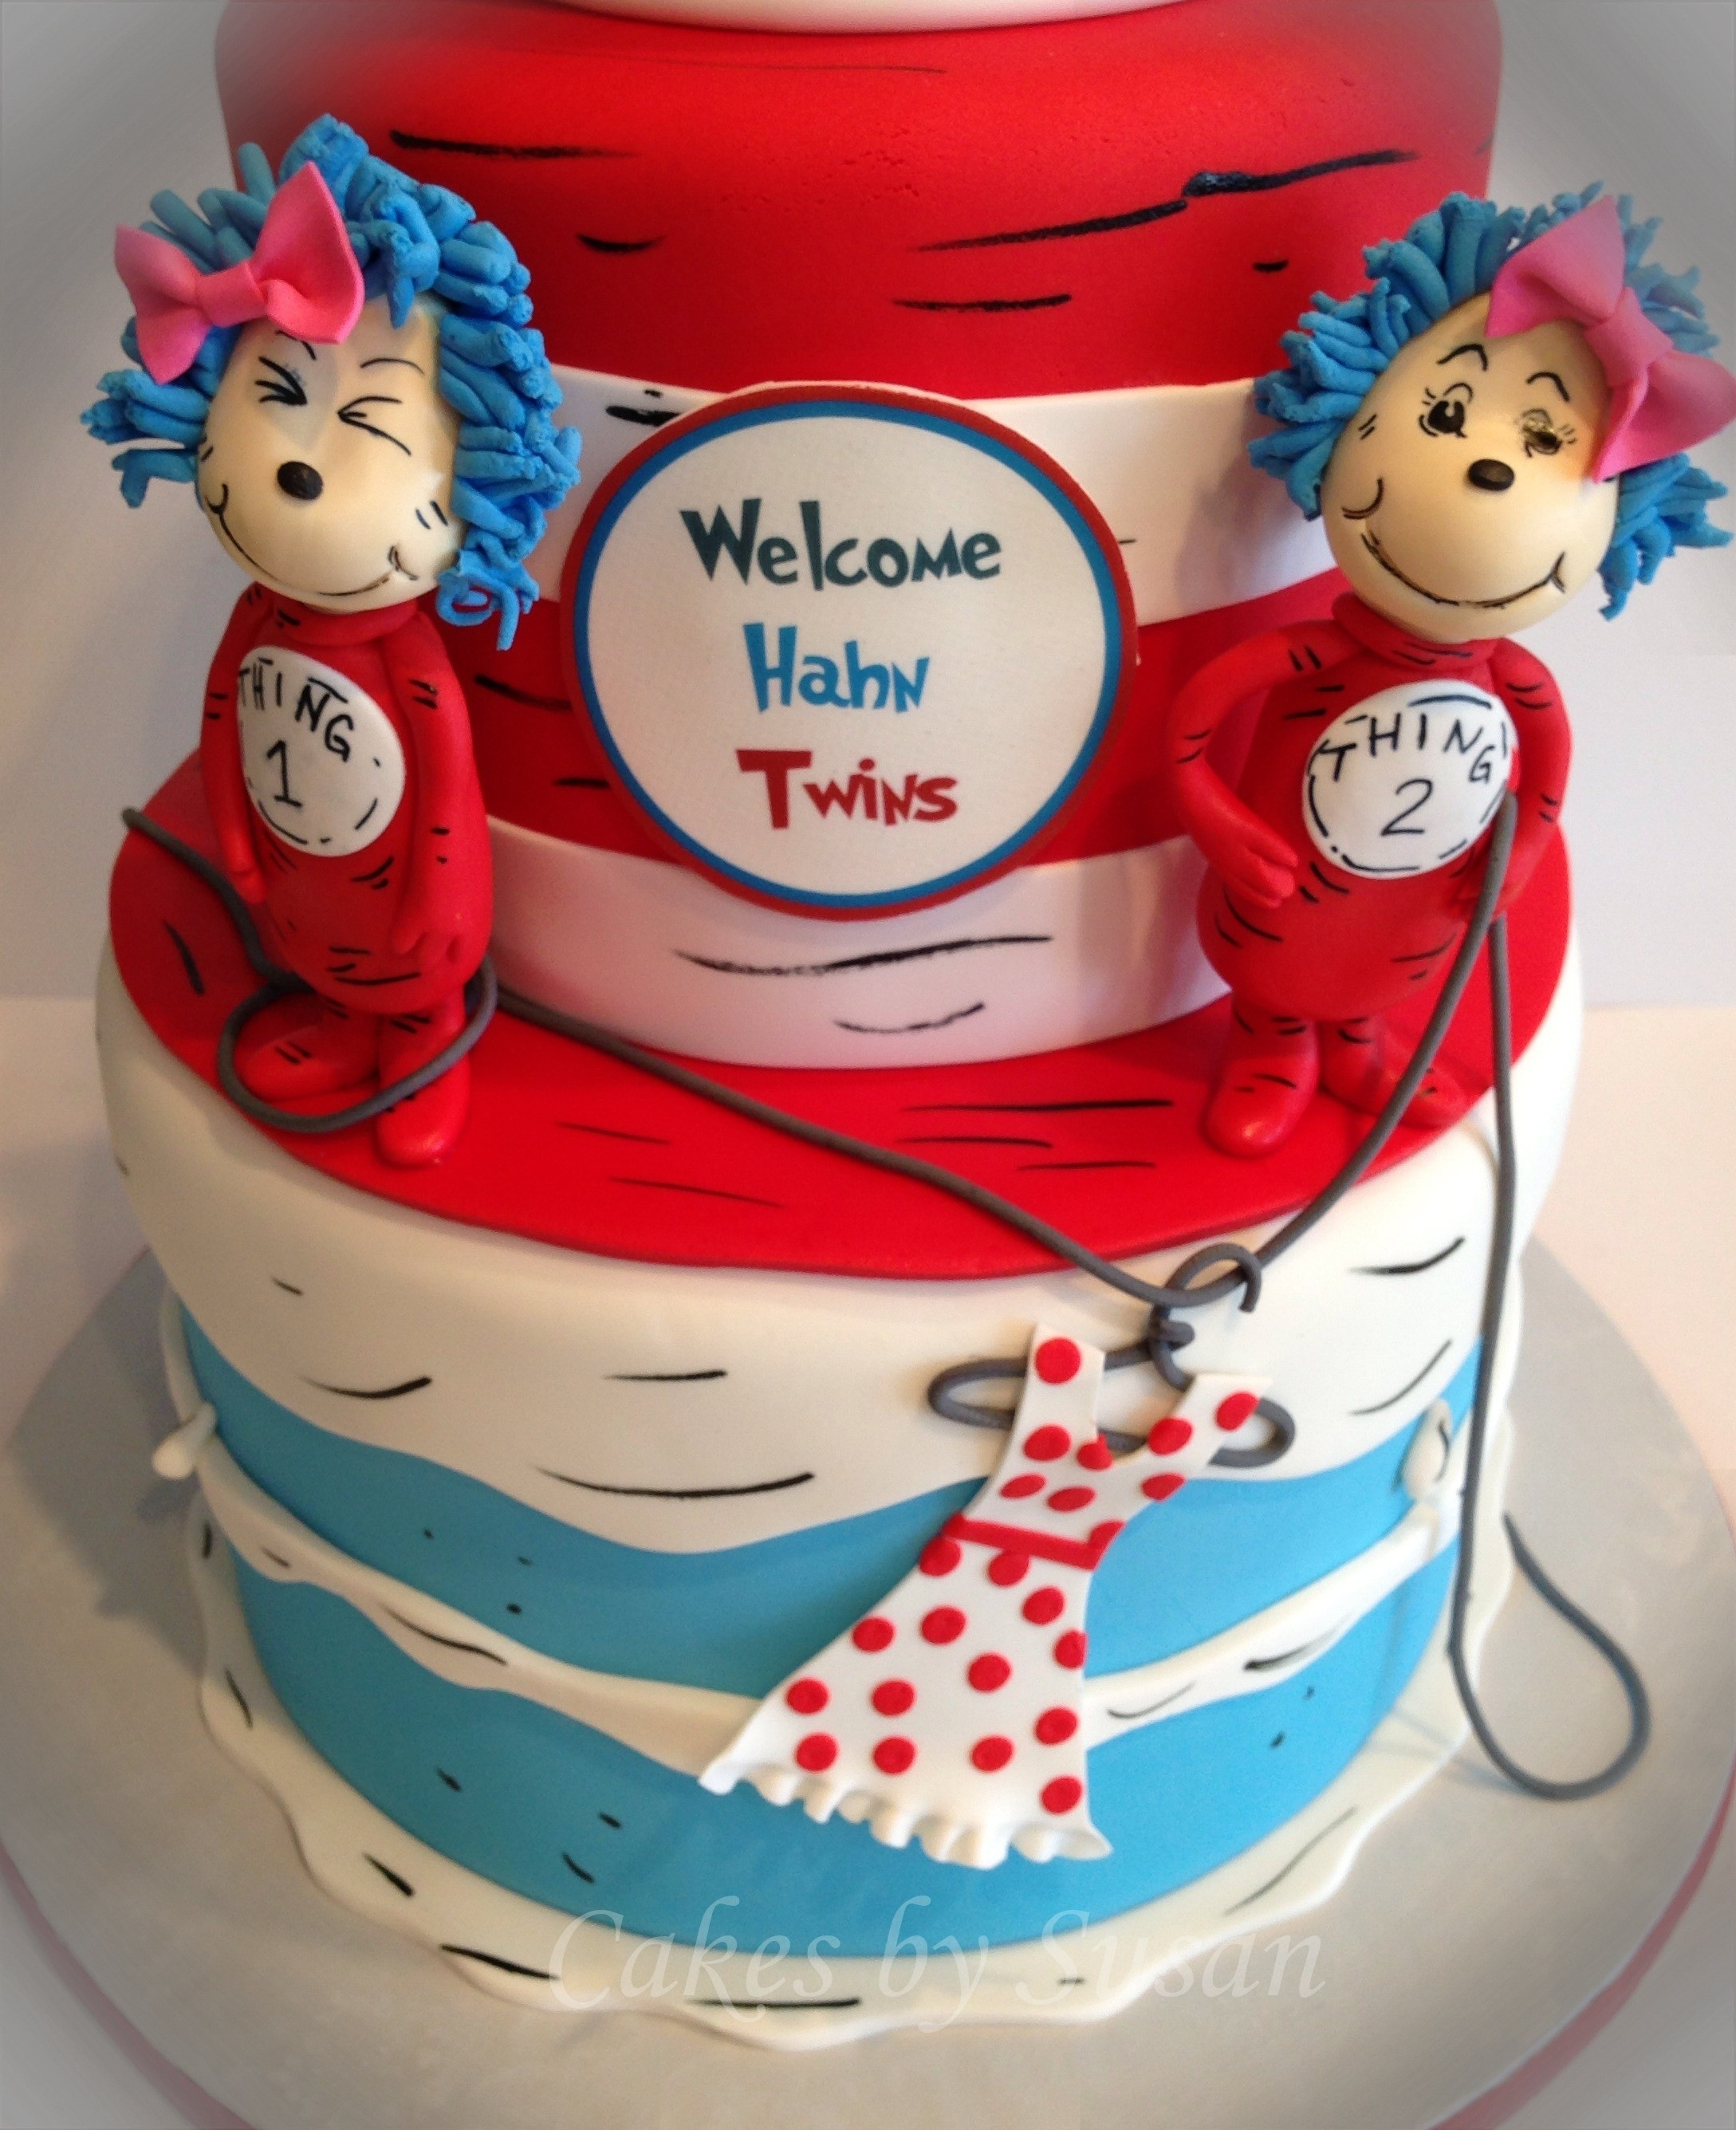 Charming Thing 1 And Thing 2 Baby Shower Cake For Twin Girls. Gumpaste Thing 1 And 2